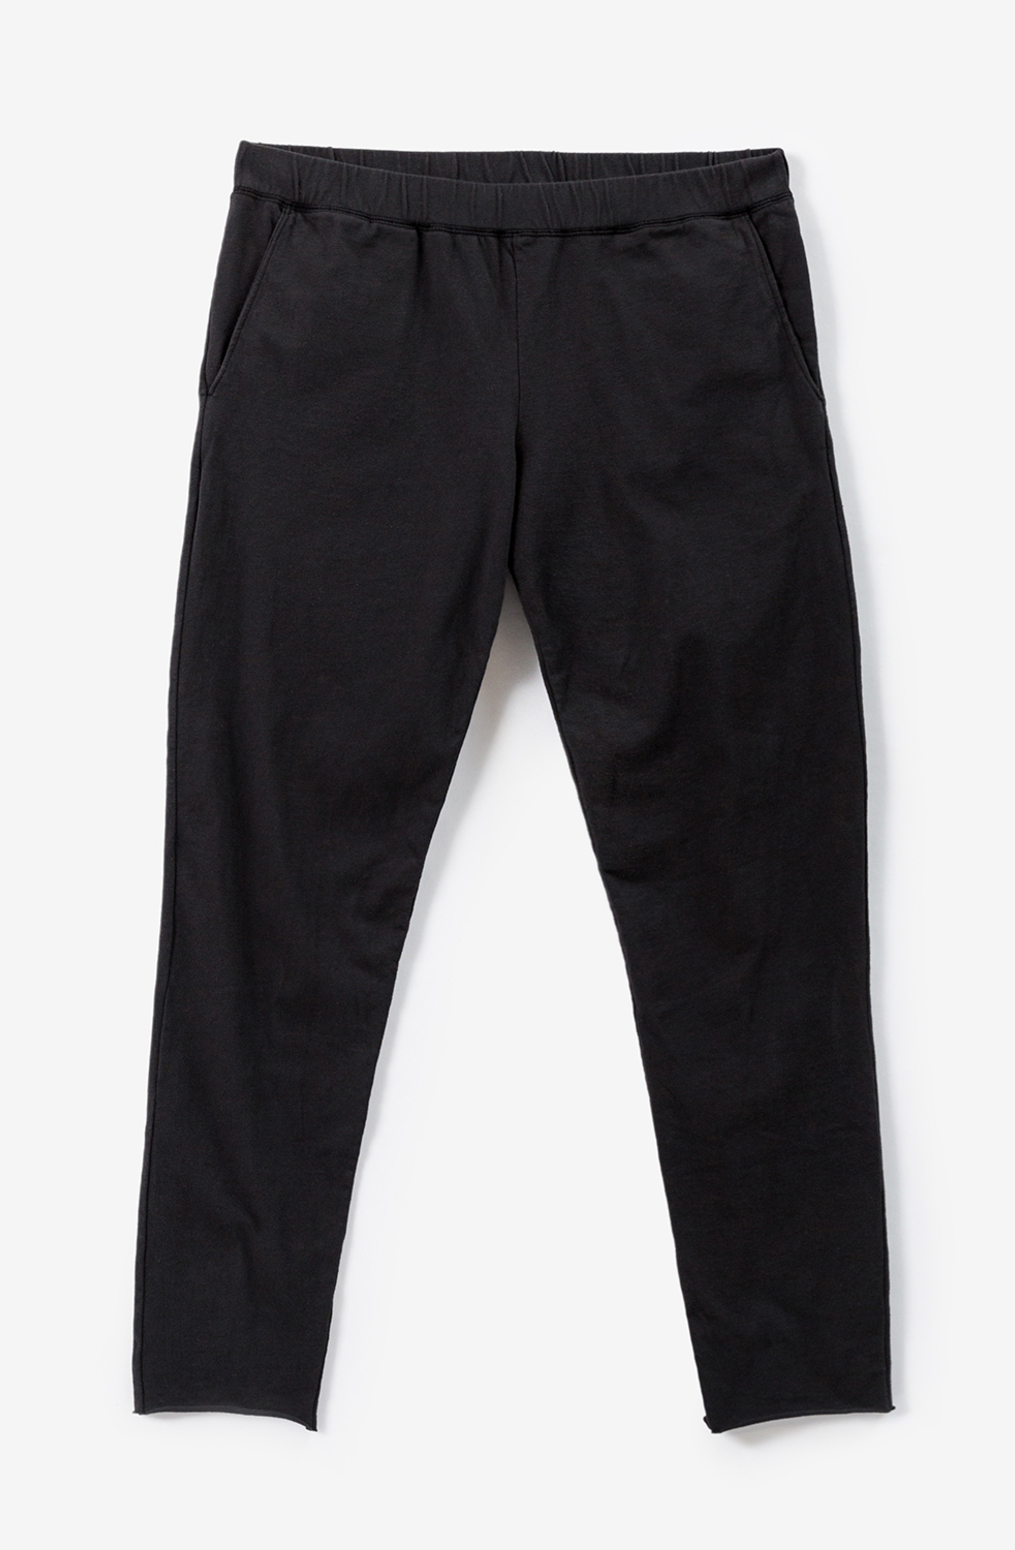 Alabama chanin organic cotton pullon jogger pants 2